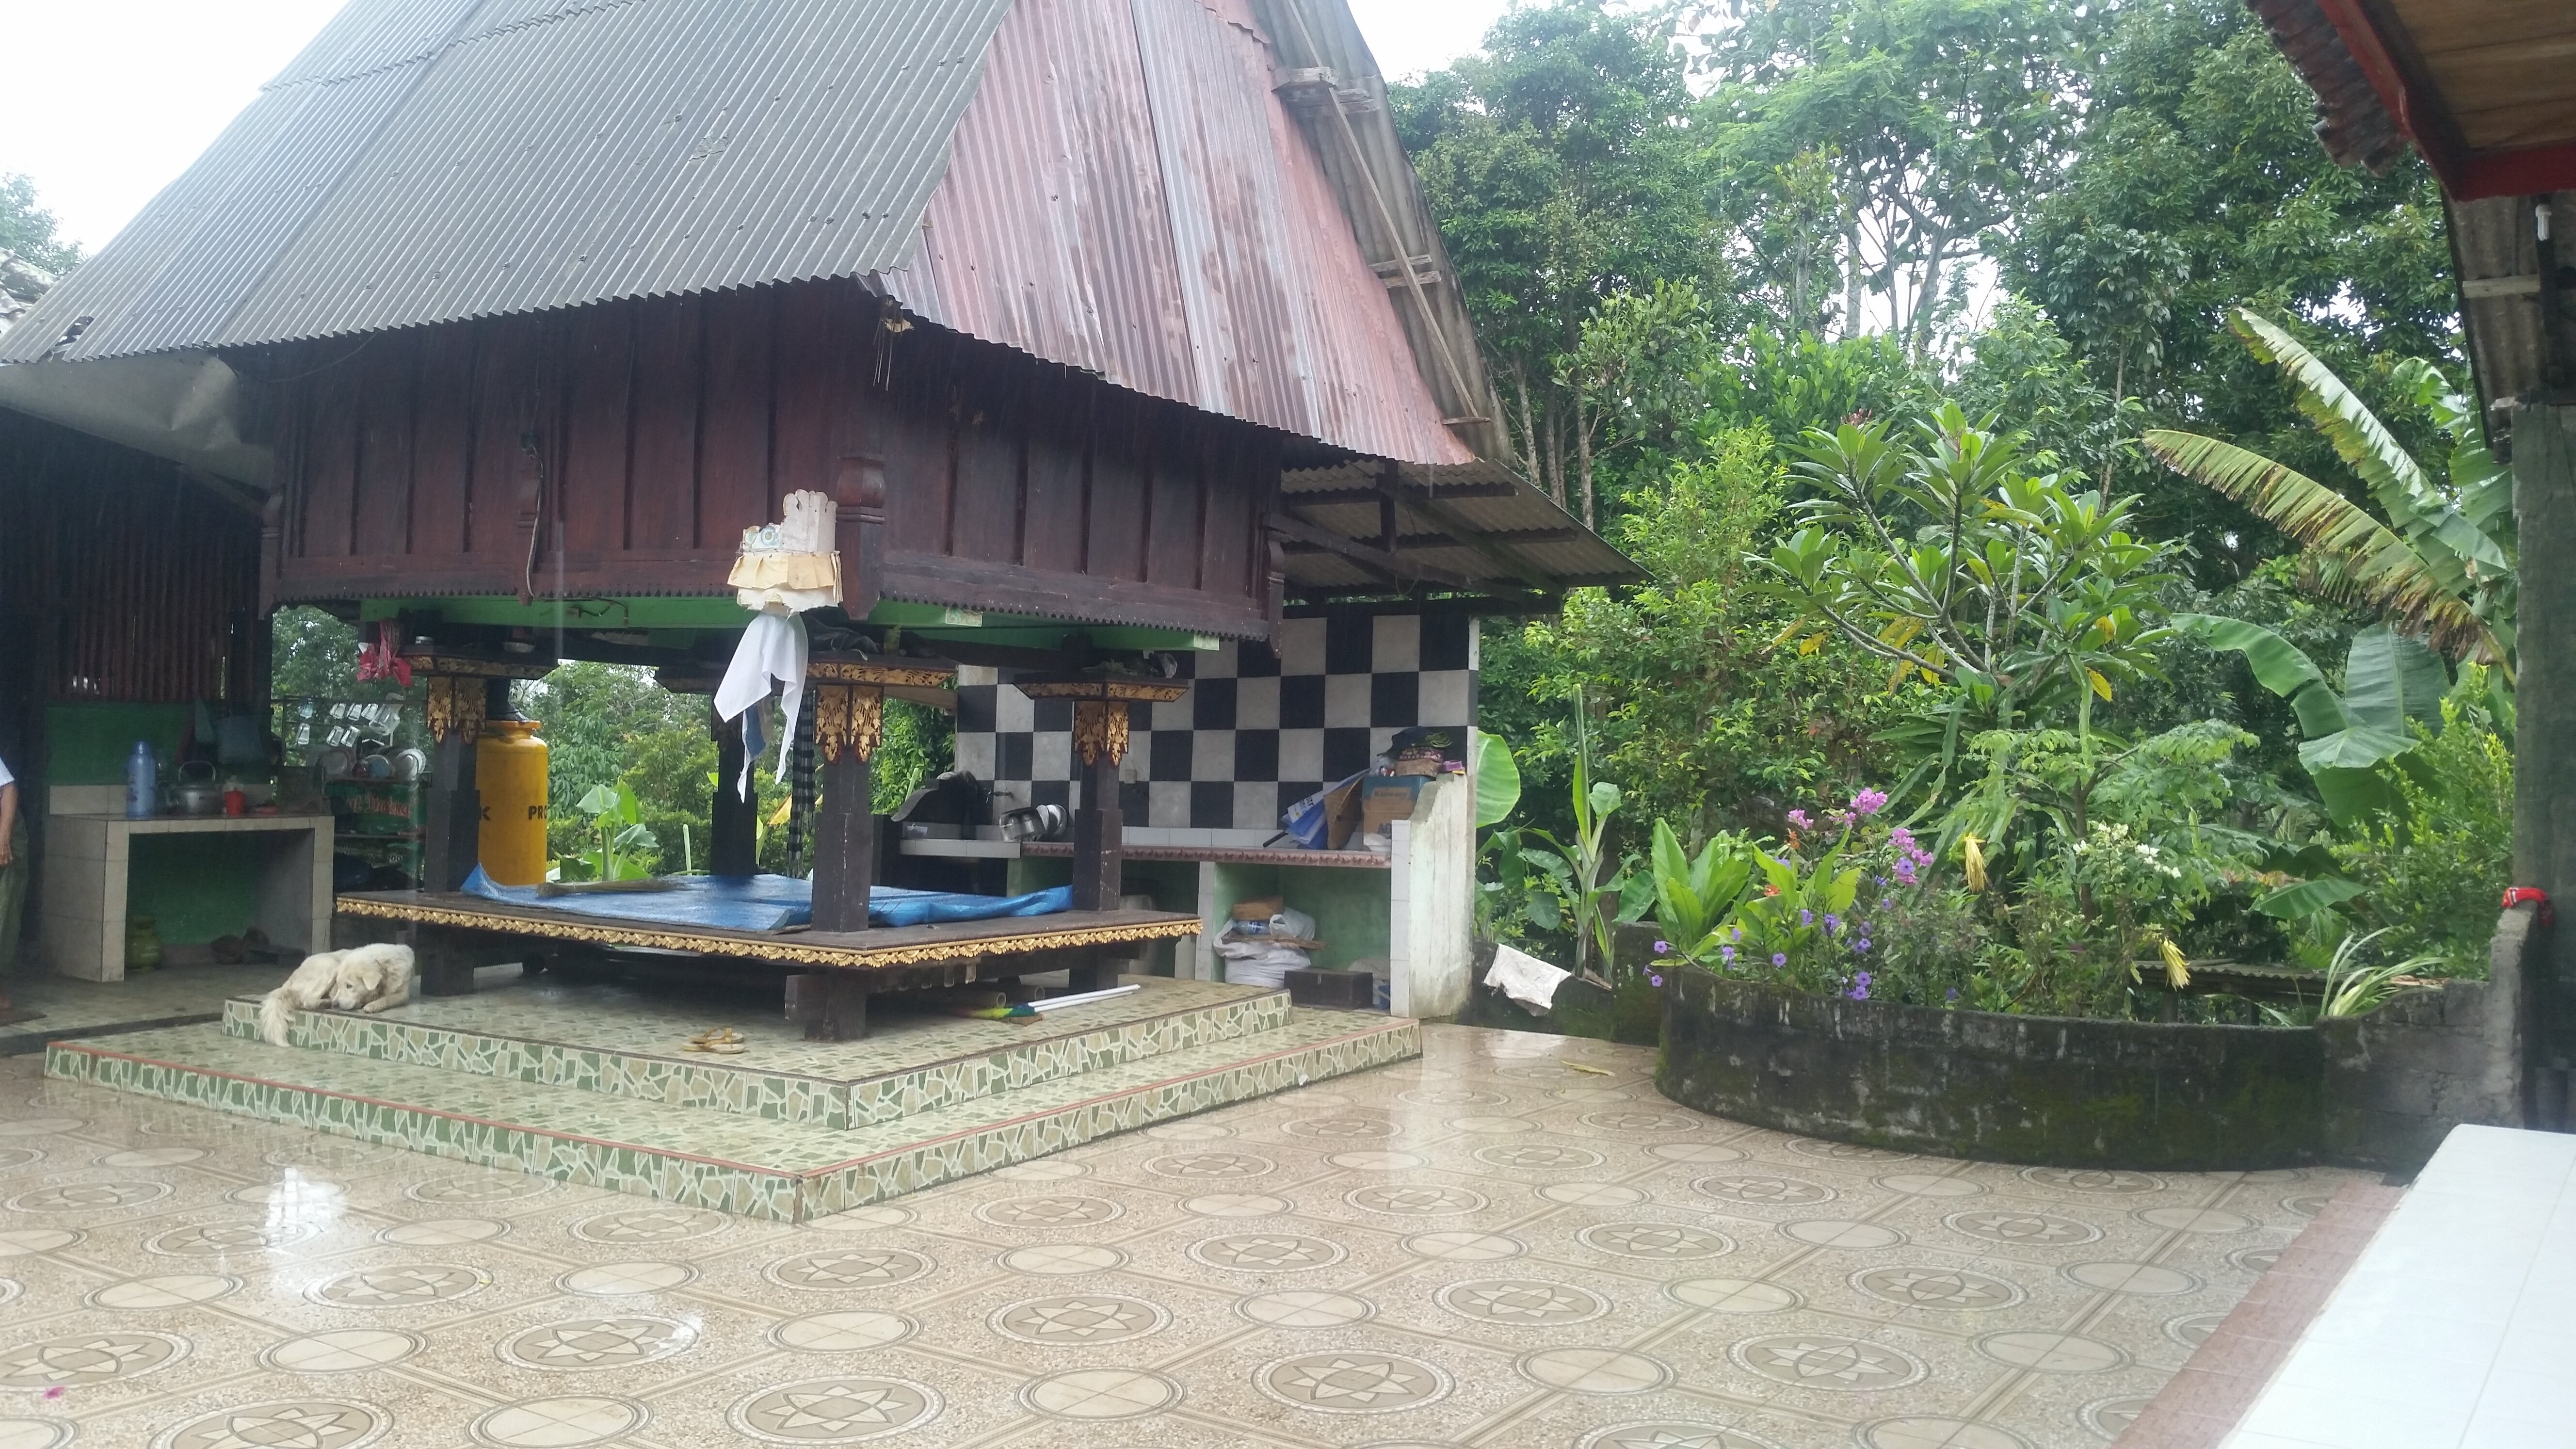 The Lumbung is the central point of a traditional Balinese home.